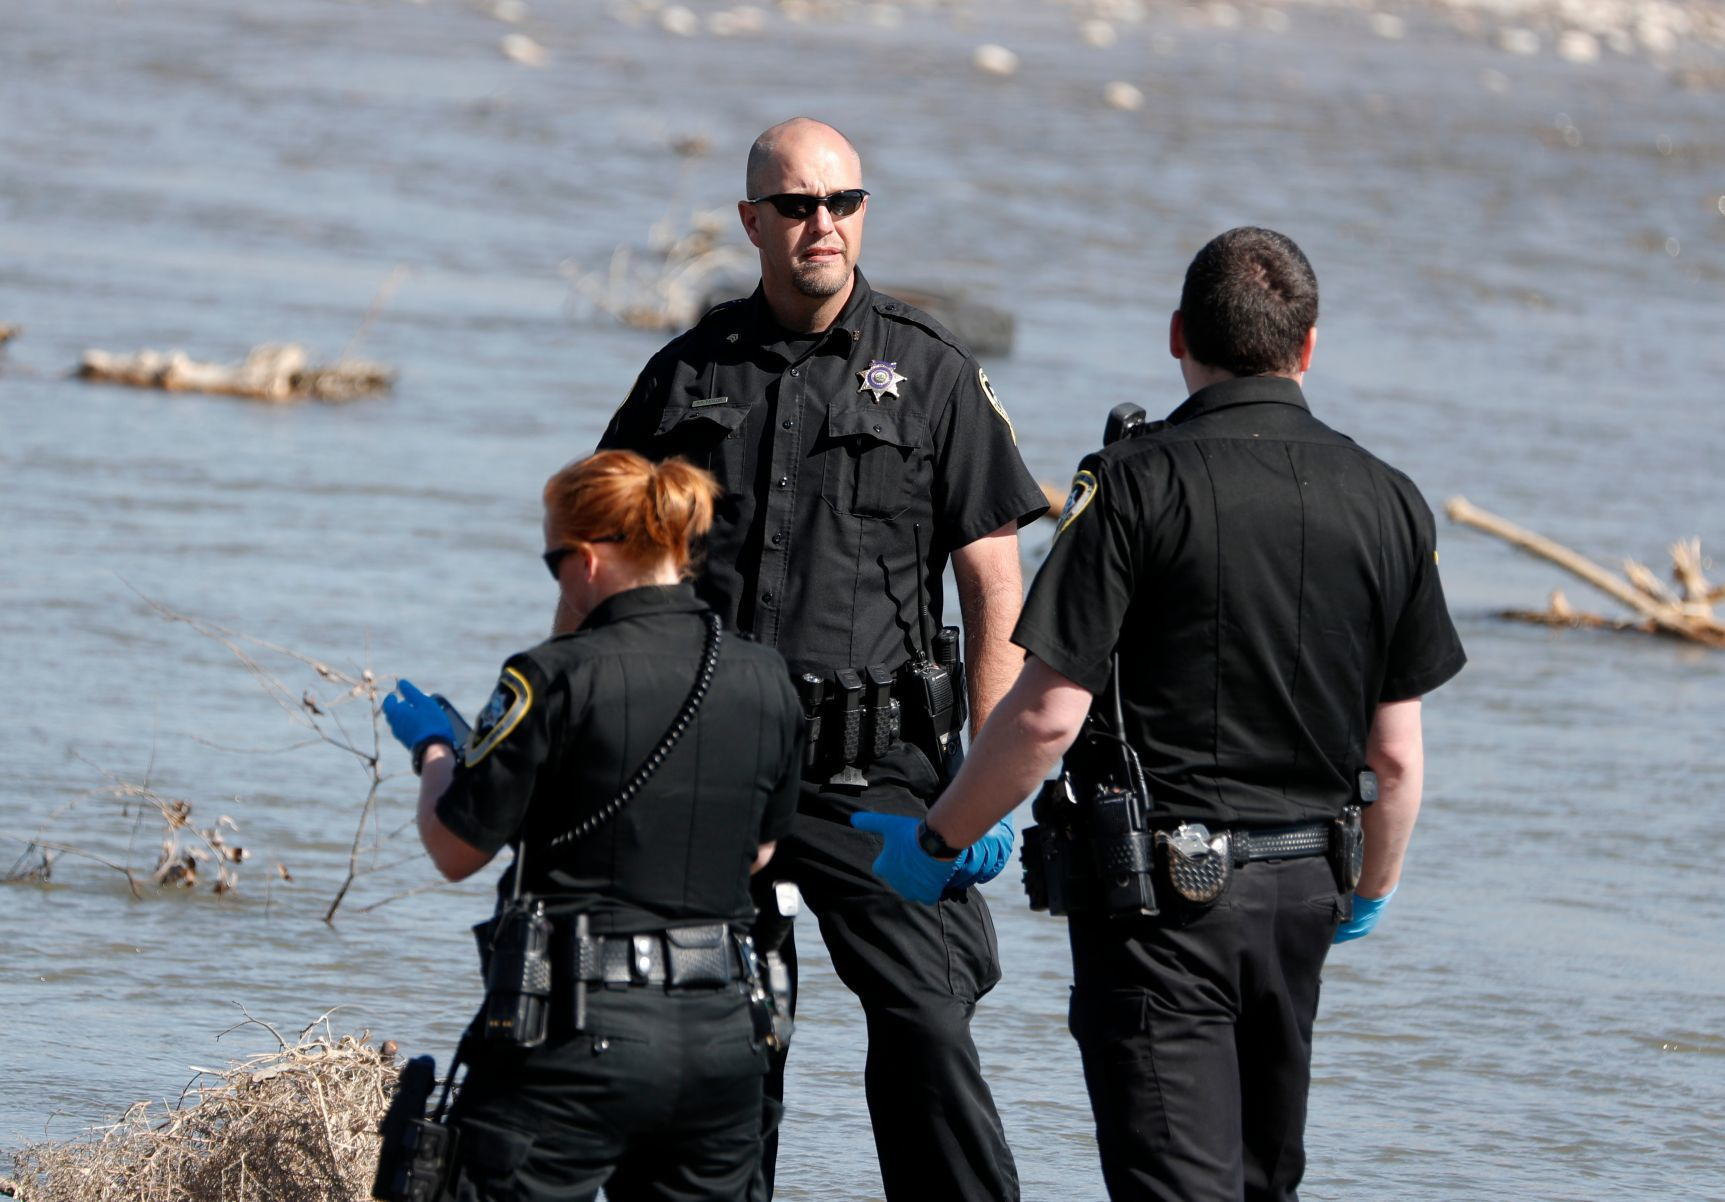 Sheriff: Body found in Yellowstone River being treated as a homicide | Billings Gazette